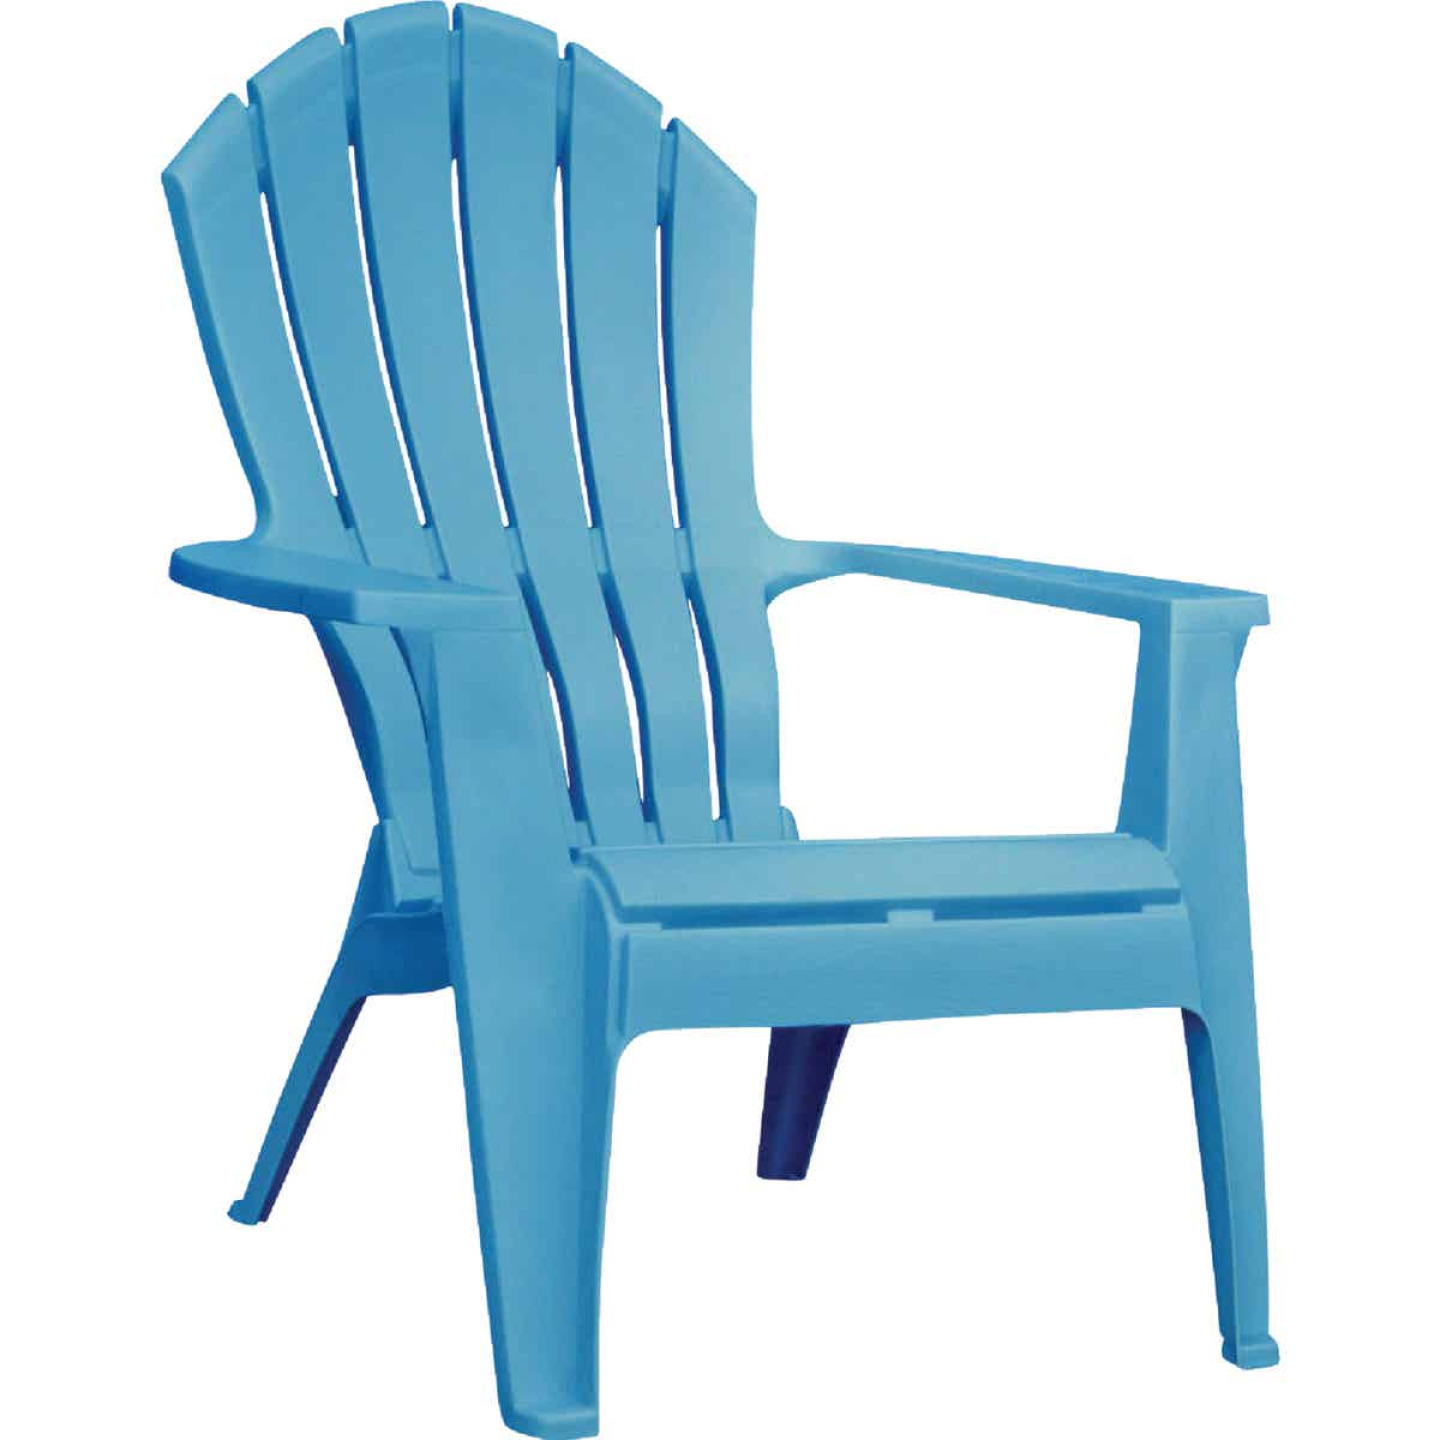 Adams RealComfort Pool Blue Resin Adirondack Chair Image 1